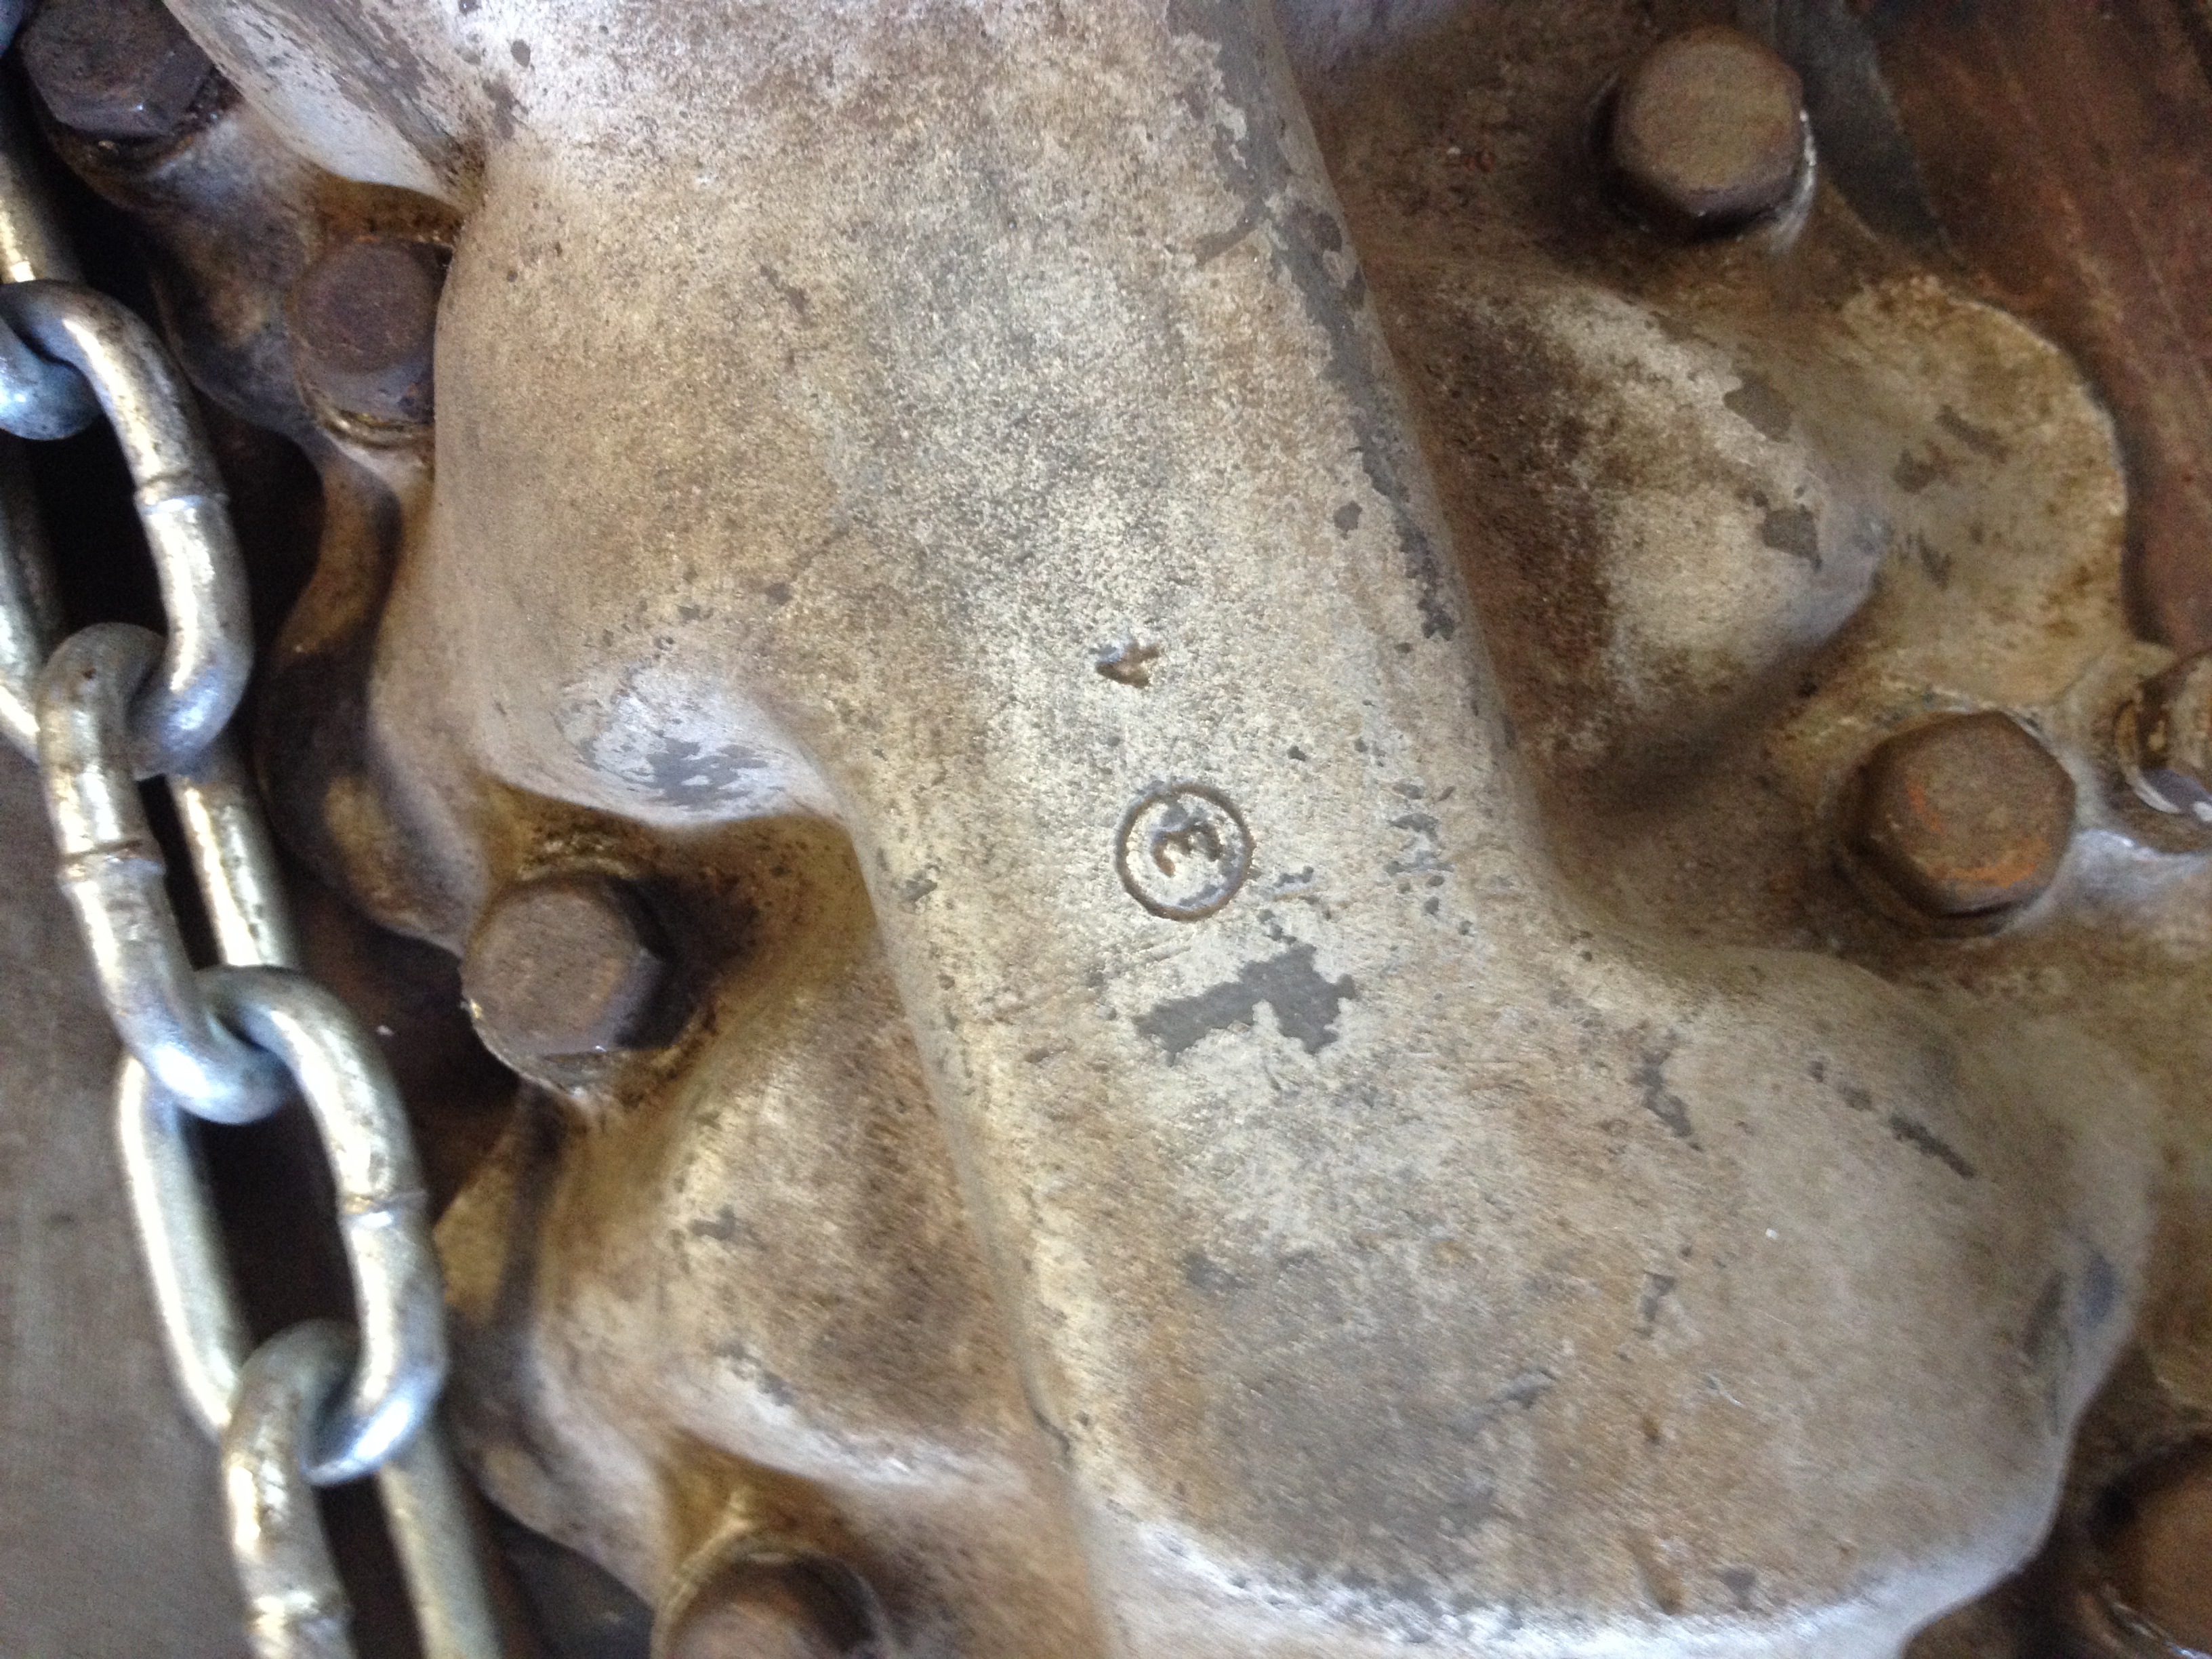 The only stamping that I can see in the intake manifold.